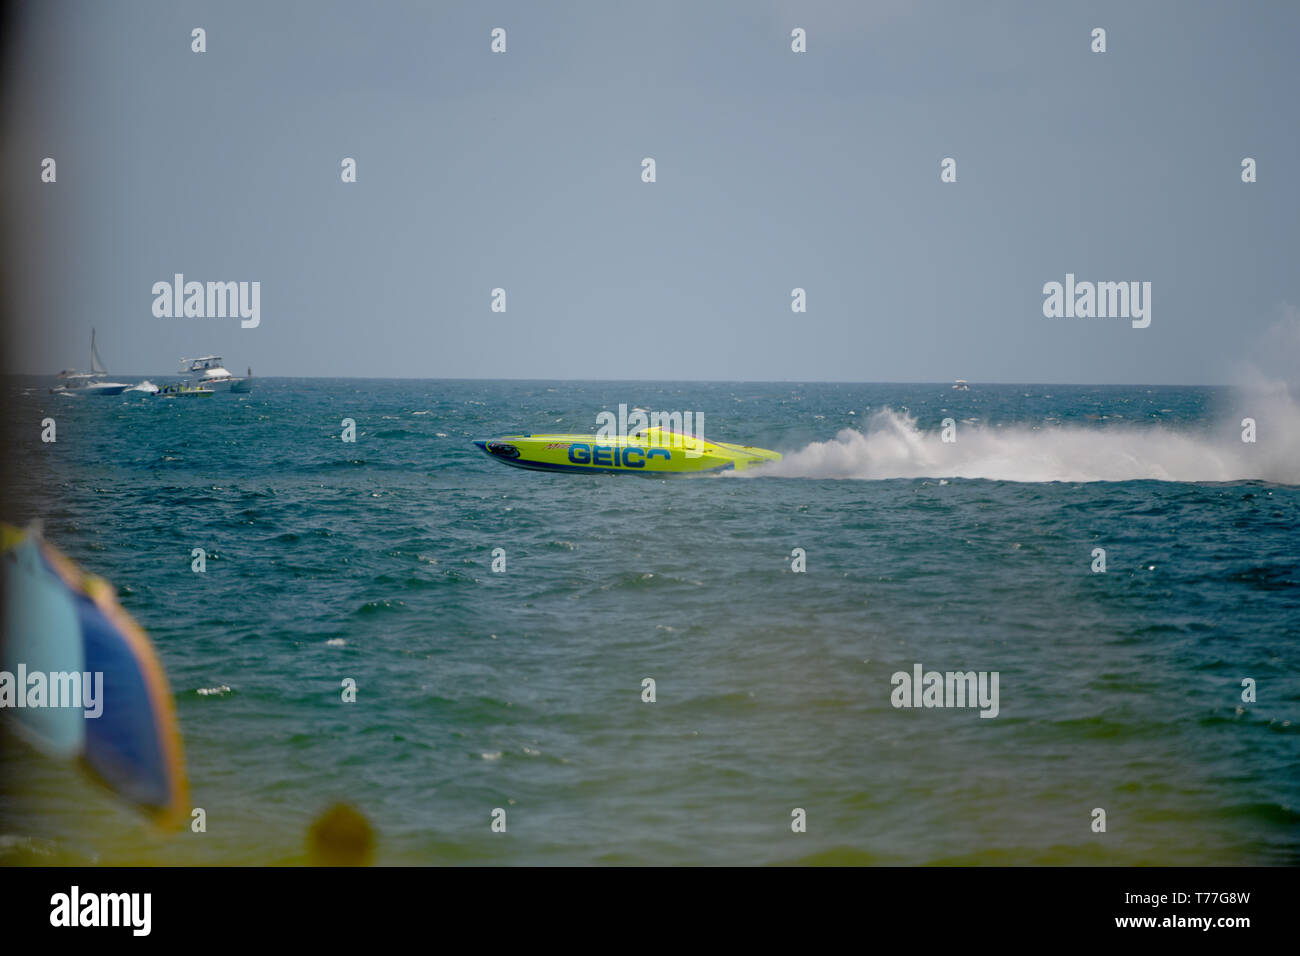 Florida, USA. 04th May, 2019. Geico Boat performs in the Fort Lauderdale Air Show on May 4, 2019 in Fort Lauderdale, Florida   People:  Geico Boat Credit: Storms Media Group/Alamy Live News Stock Photo